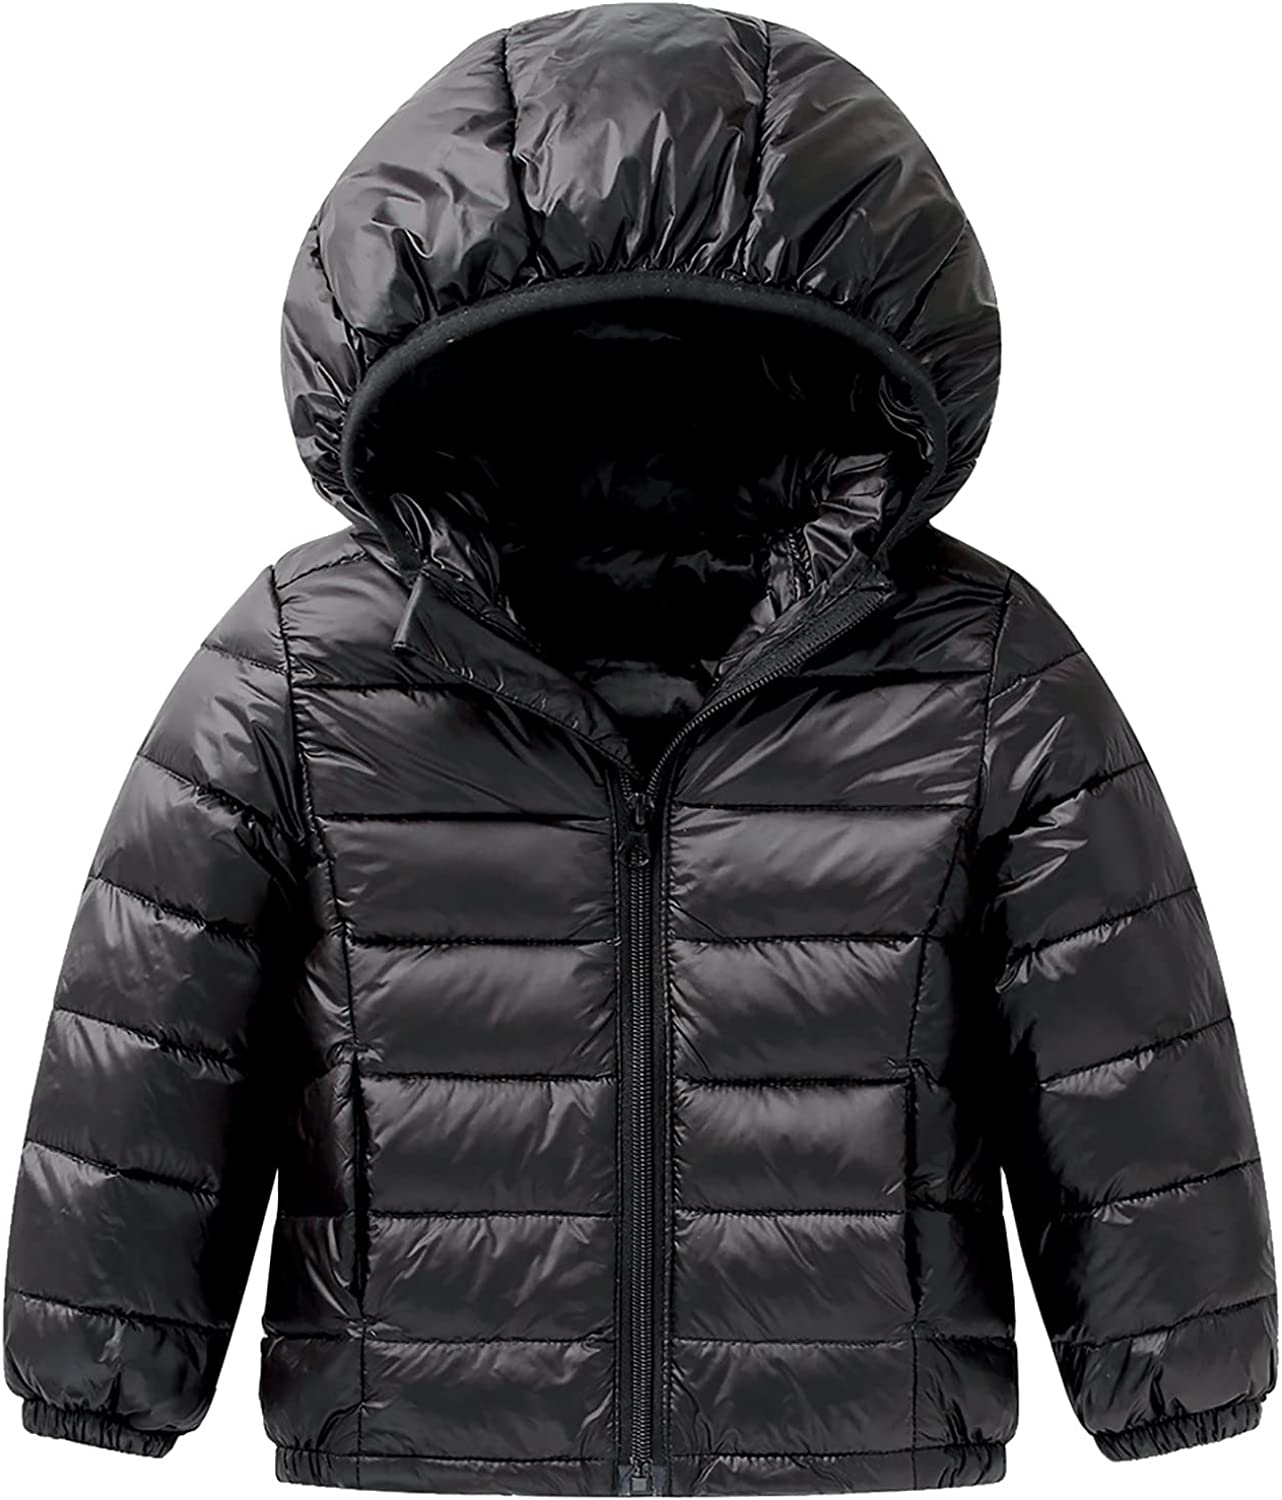 Winter Coats for Be super welcome Spasm price Kids with Hoods Baby Boys Lightweight Pac Girls